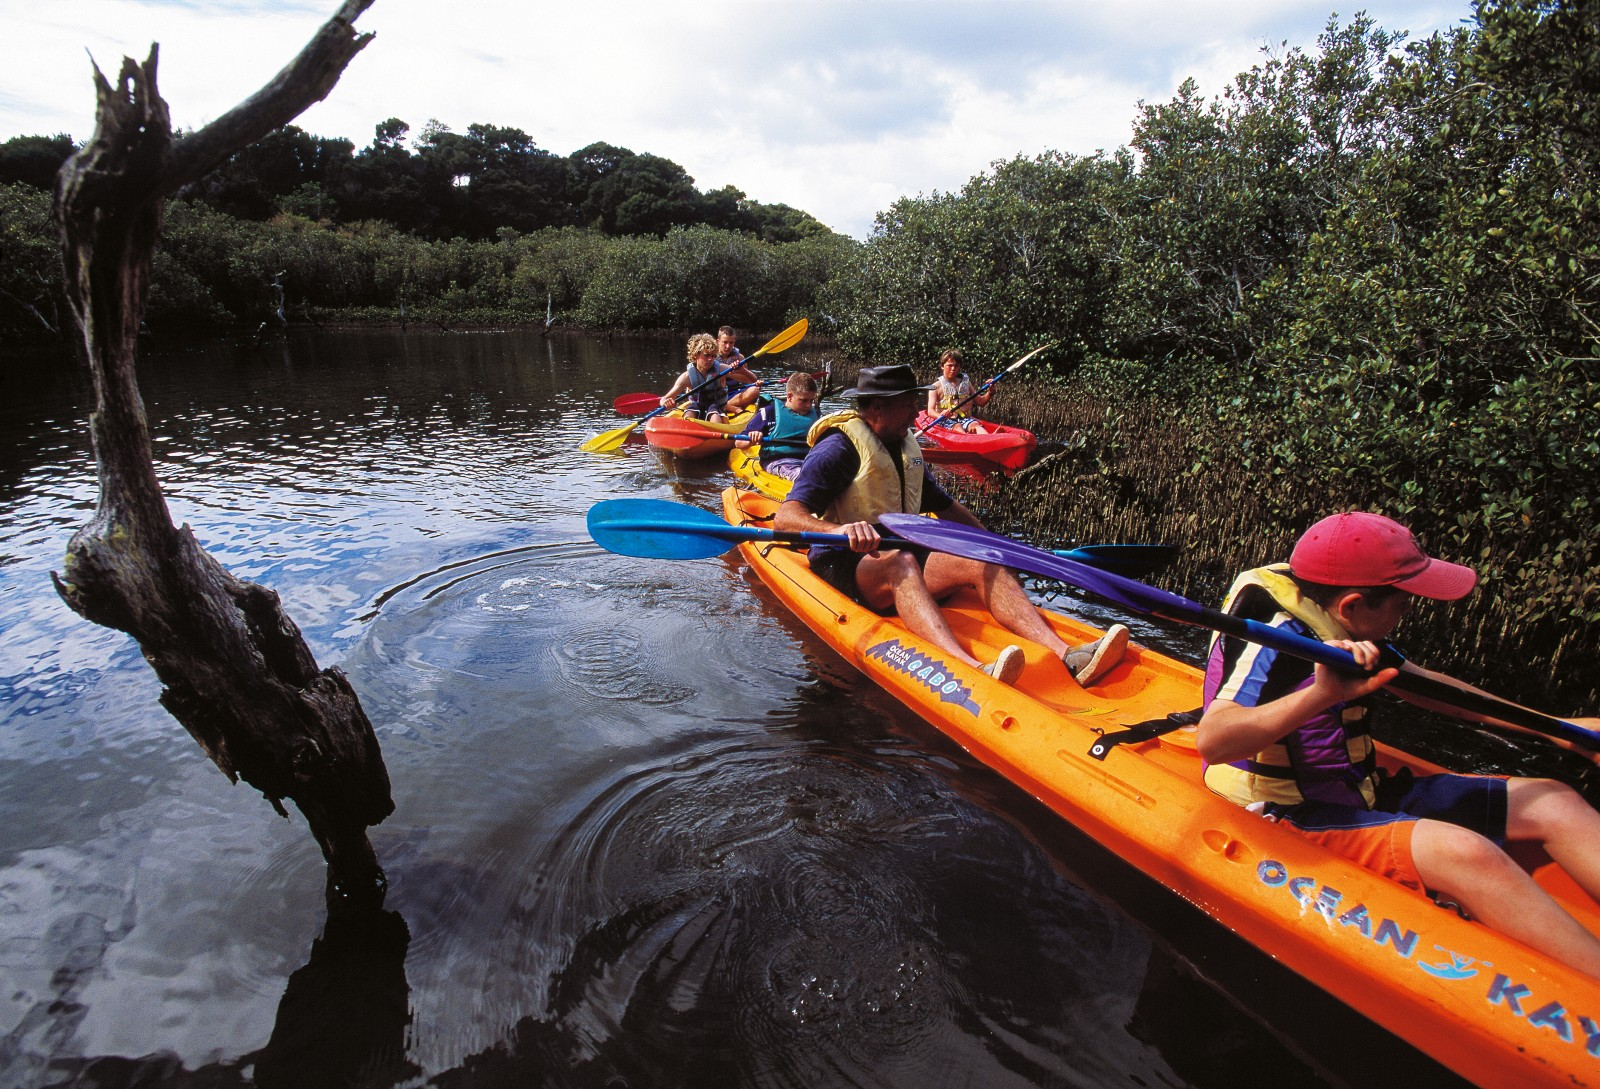 Schoolchildren attending camps at the QEII-run Aroha Island Ecological Centre, near Kerikeri, have a good chance of seeing kiwi by night and, while kayaking through the island's mangroves with manager Greg Blunden (opposite, in lead kayak), banded rails by day.